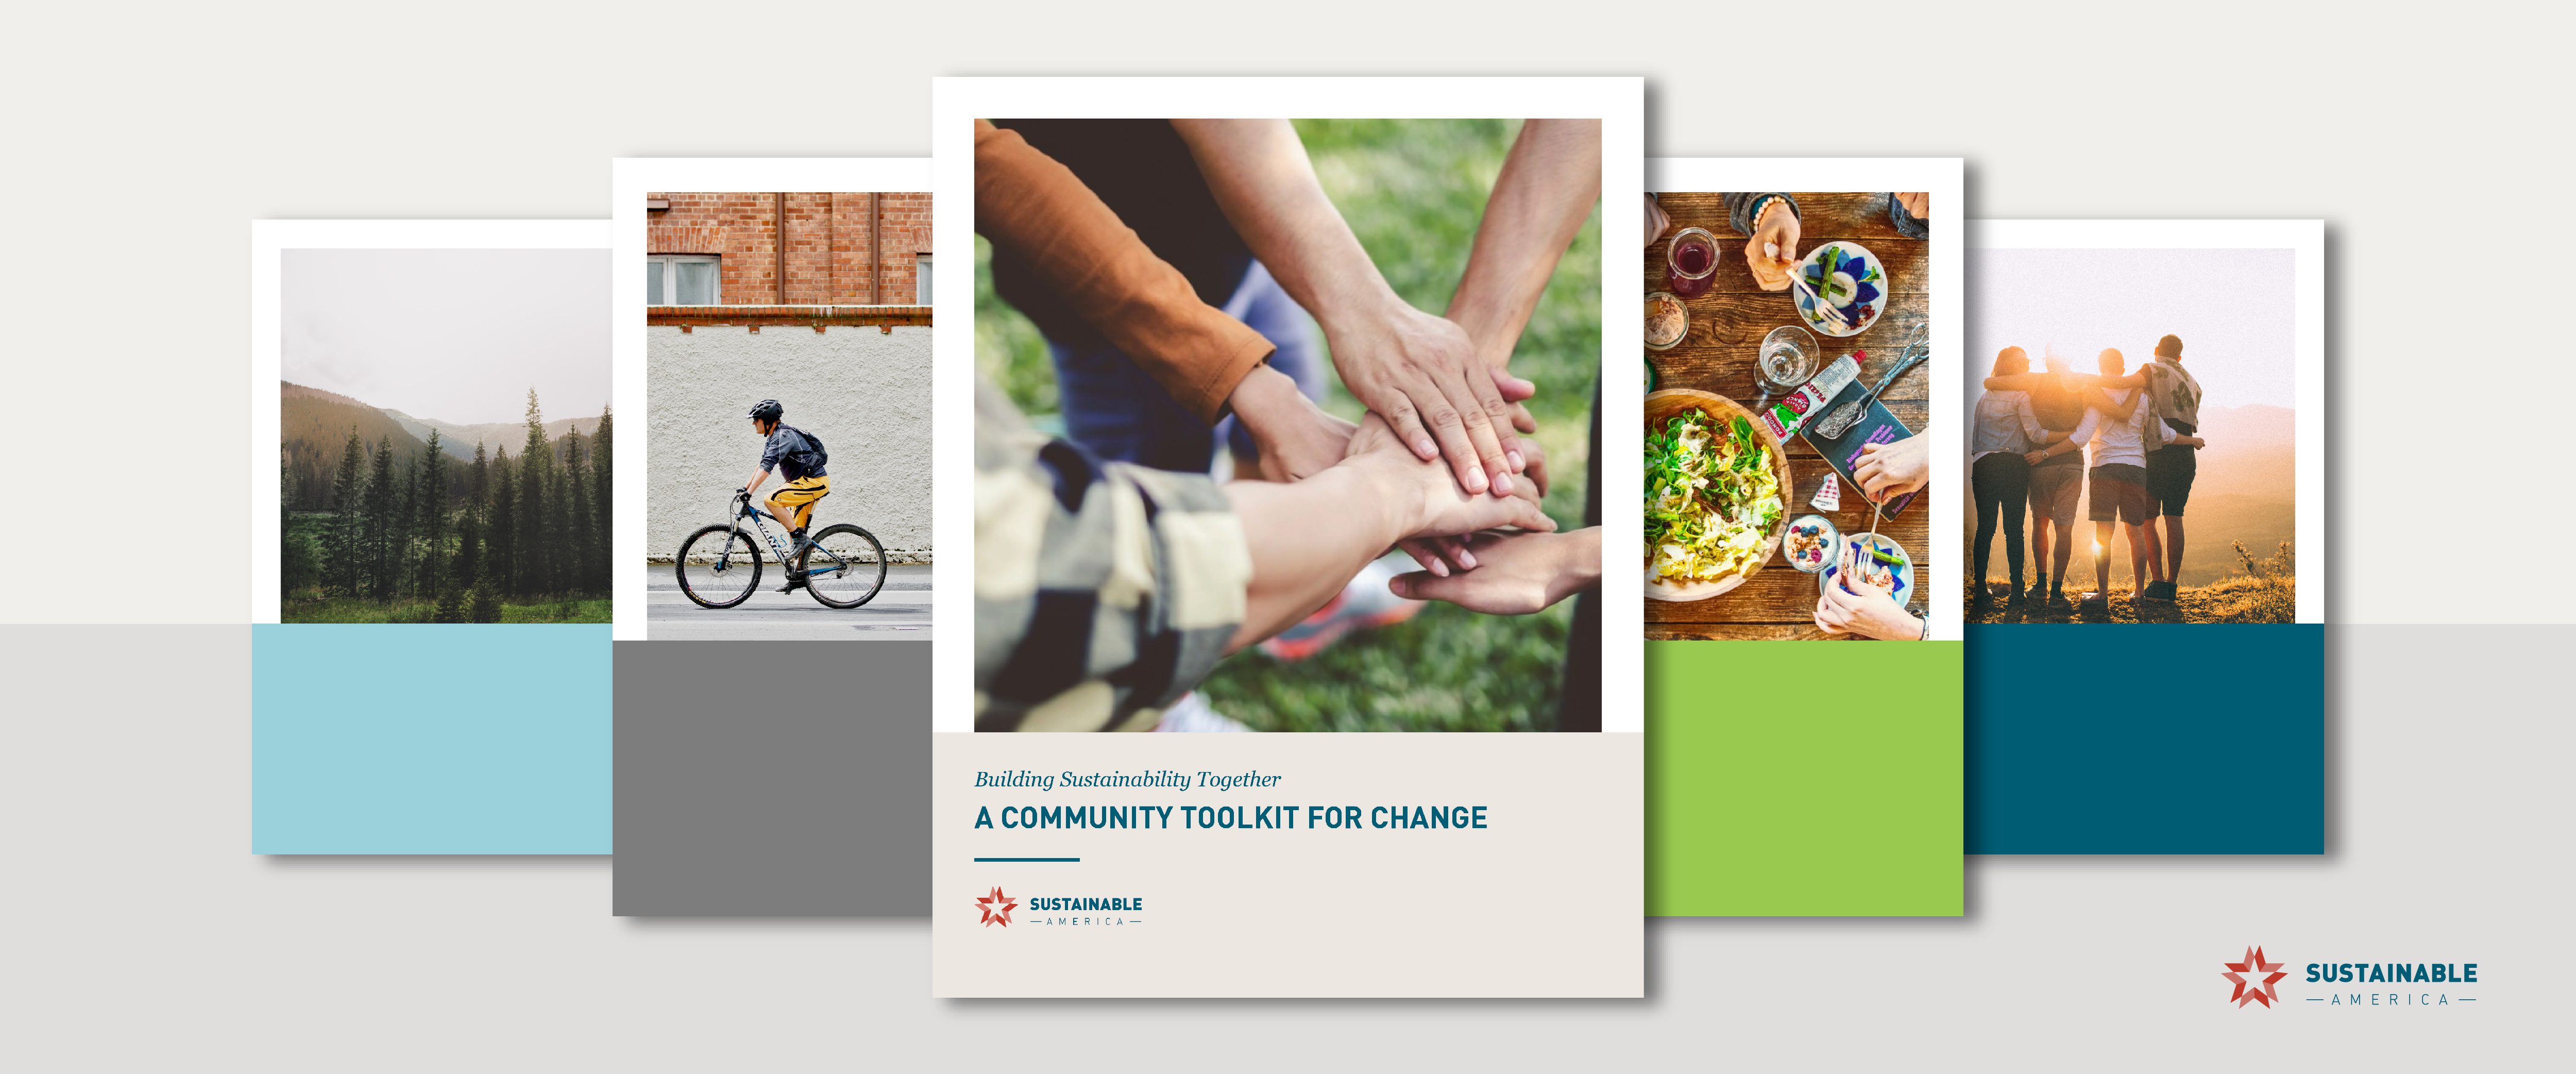 A New Toolkit for Community Change